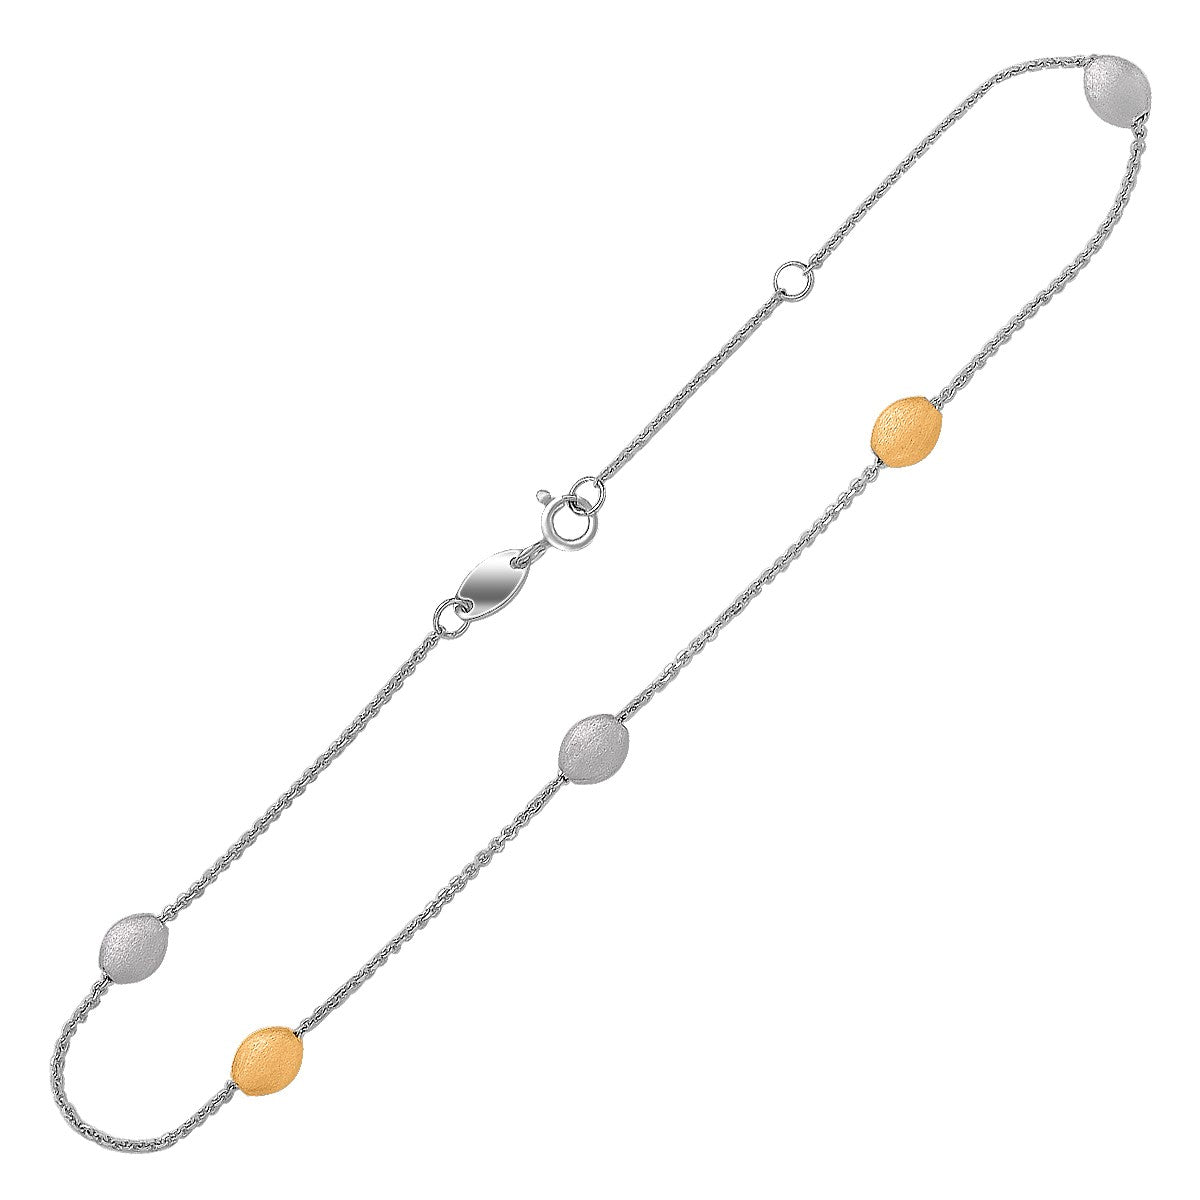 14K Yellow Gold and Sterling Silver Pebble Stationed Anklet - Uniquepedia.com